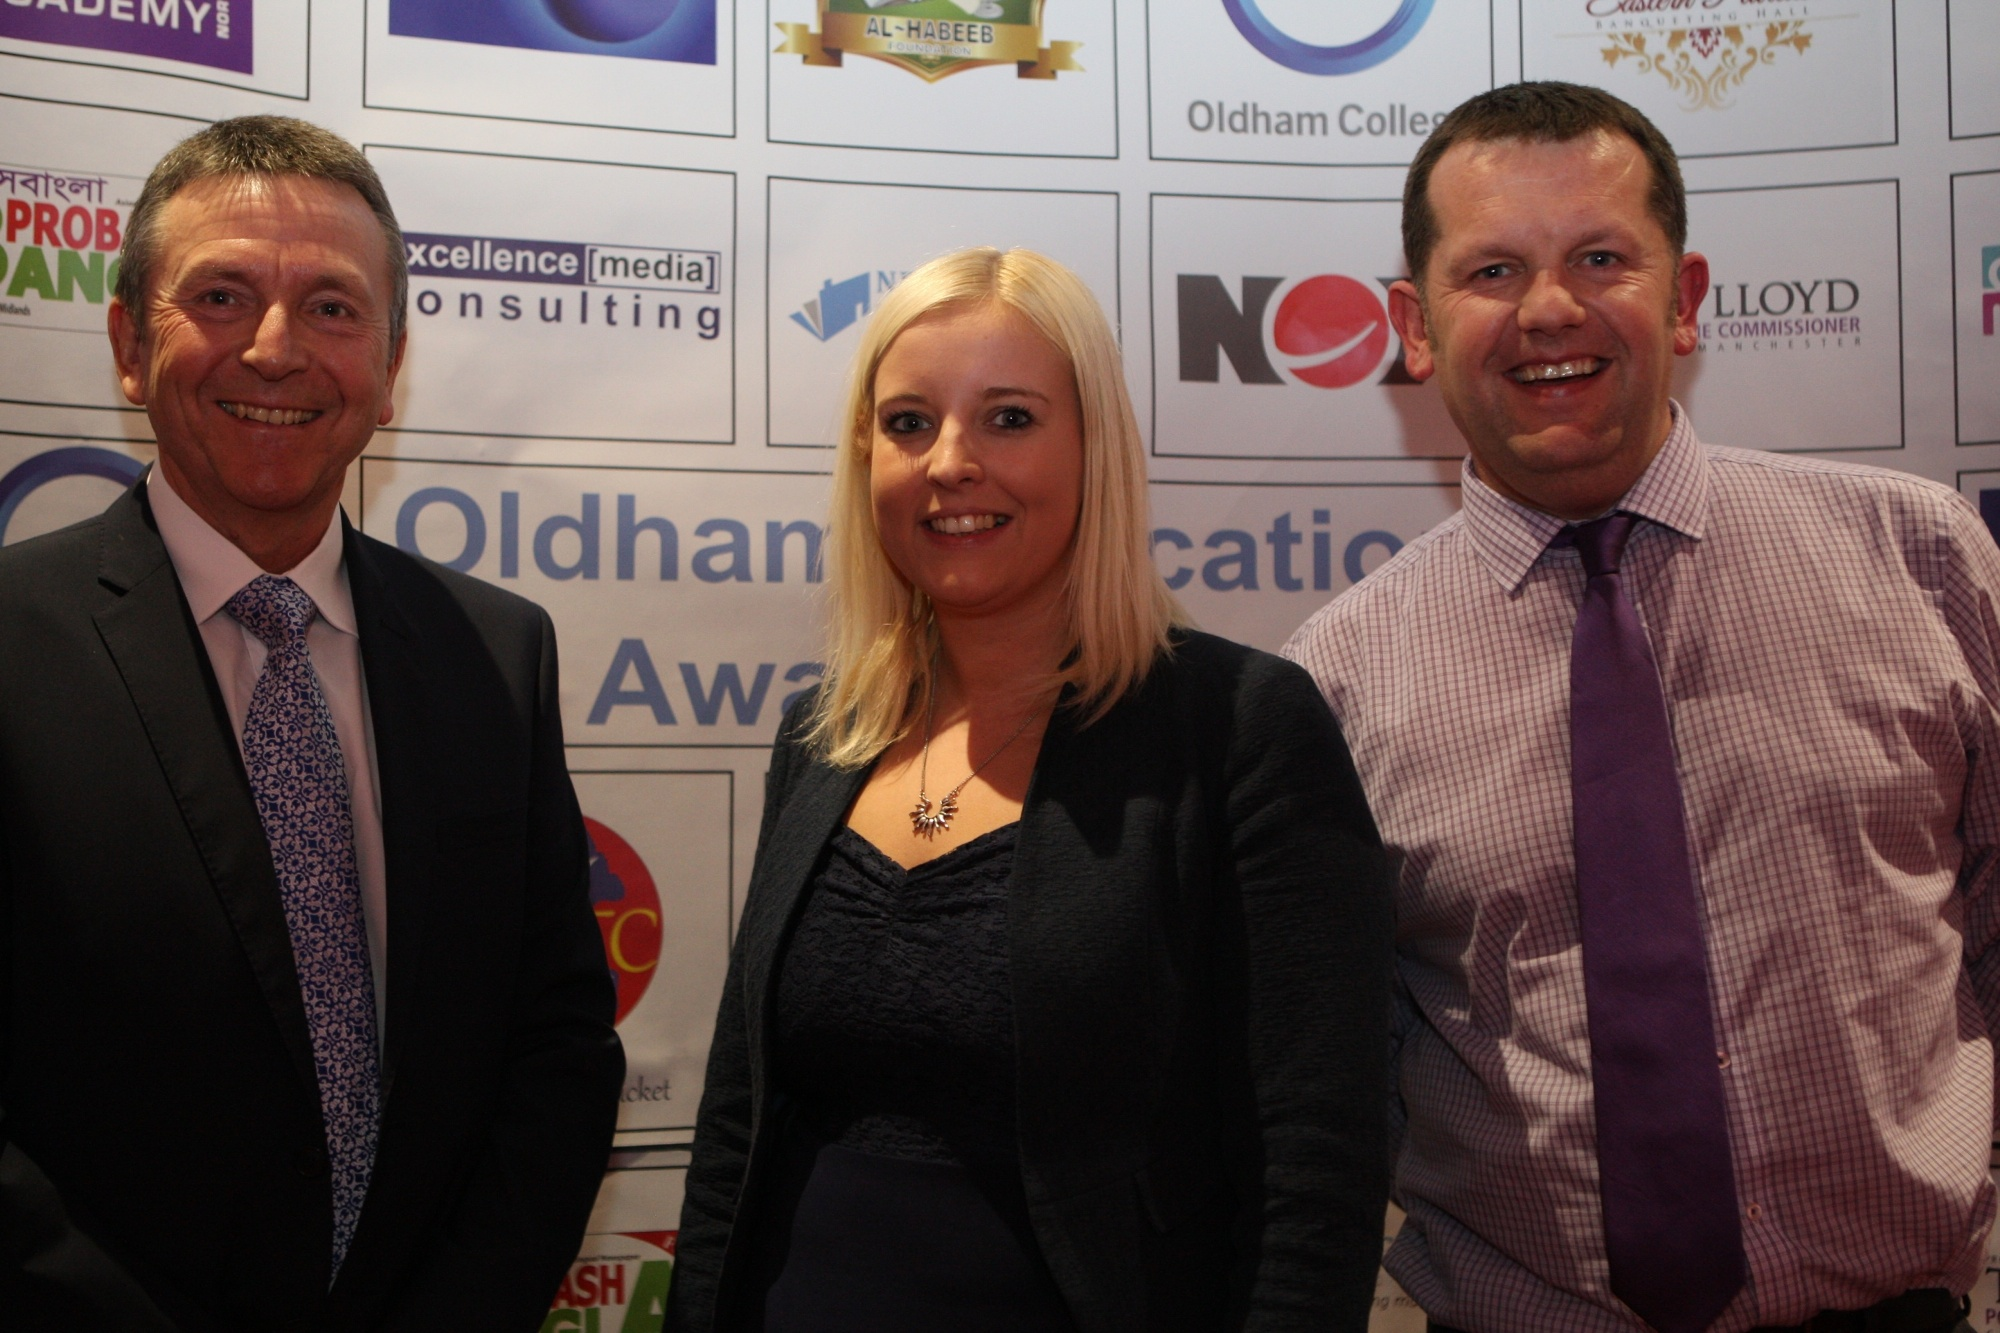 Oldham Schools Award 2015. Phil Wareing 2015